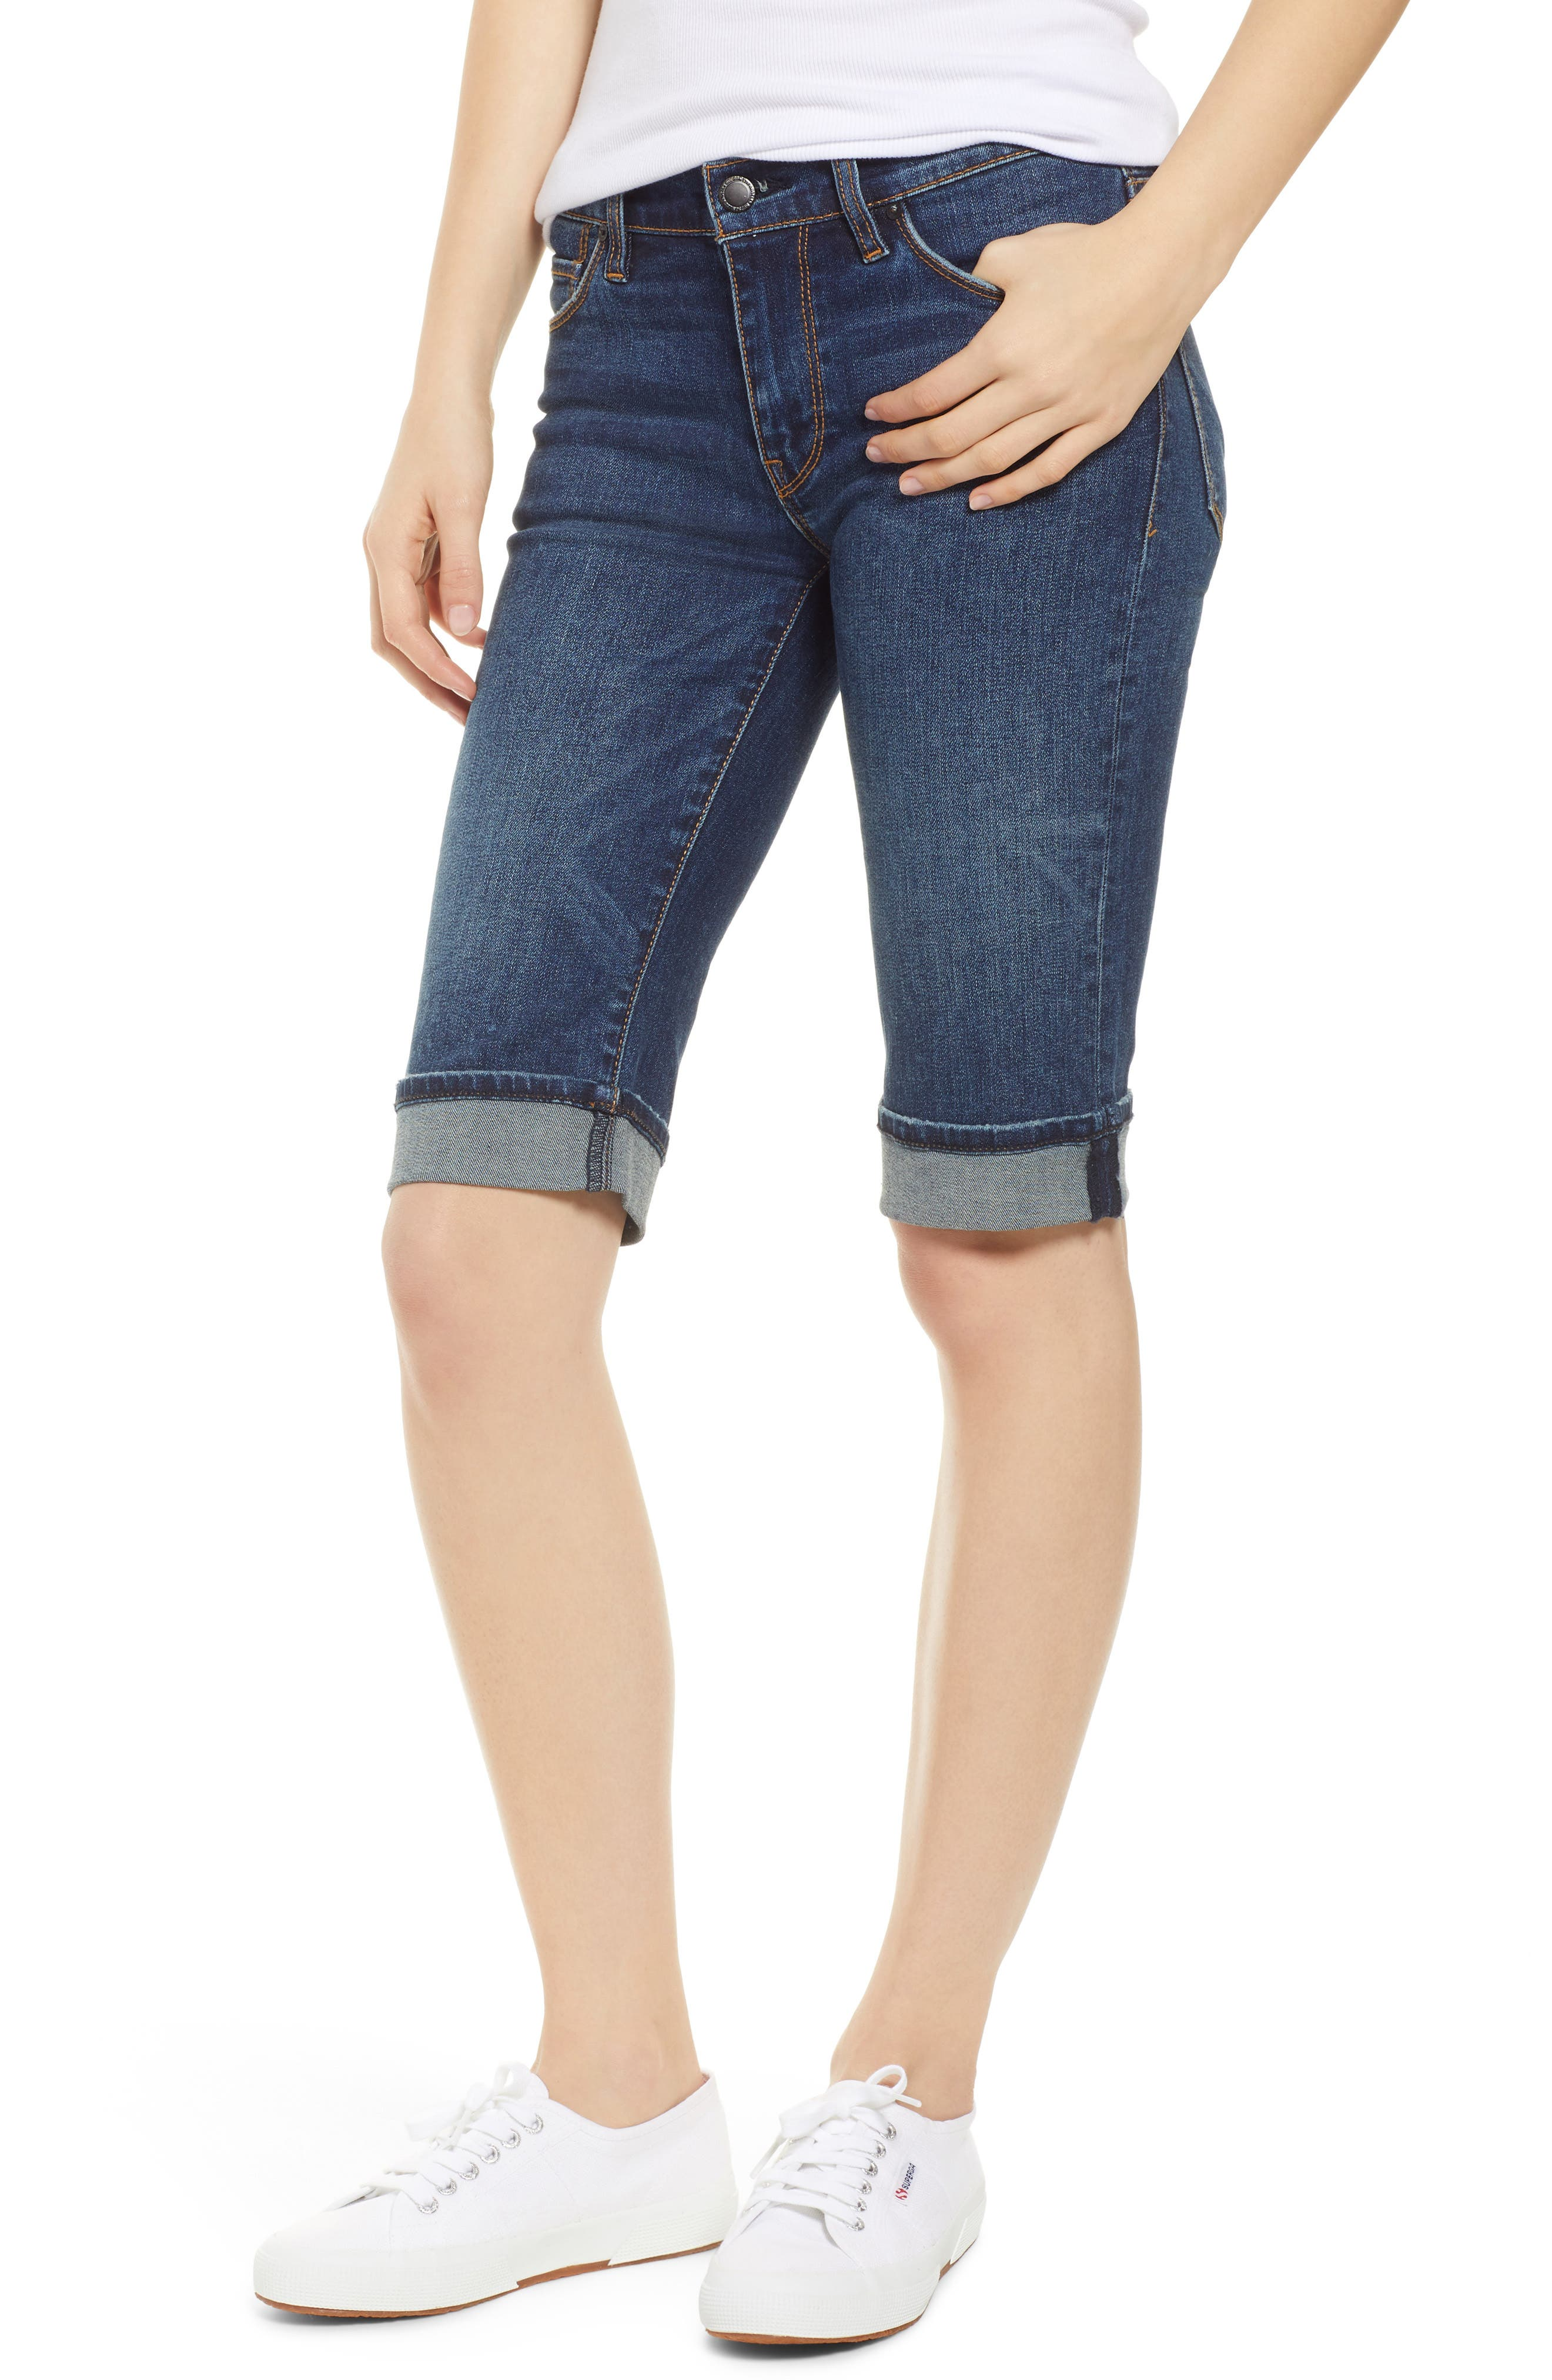 Not too short, not too long. just right. Sleekly fitted like your favorite skinnies, these versatile shorts feature cute rolled cuffs that highlight the sunshine-ready length. Style Name: Hudson Jeans Amelia Rolled Knee Shorts (Vagabond). Style Number: 5320757. Available in stores.